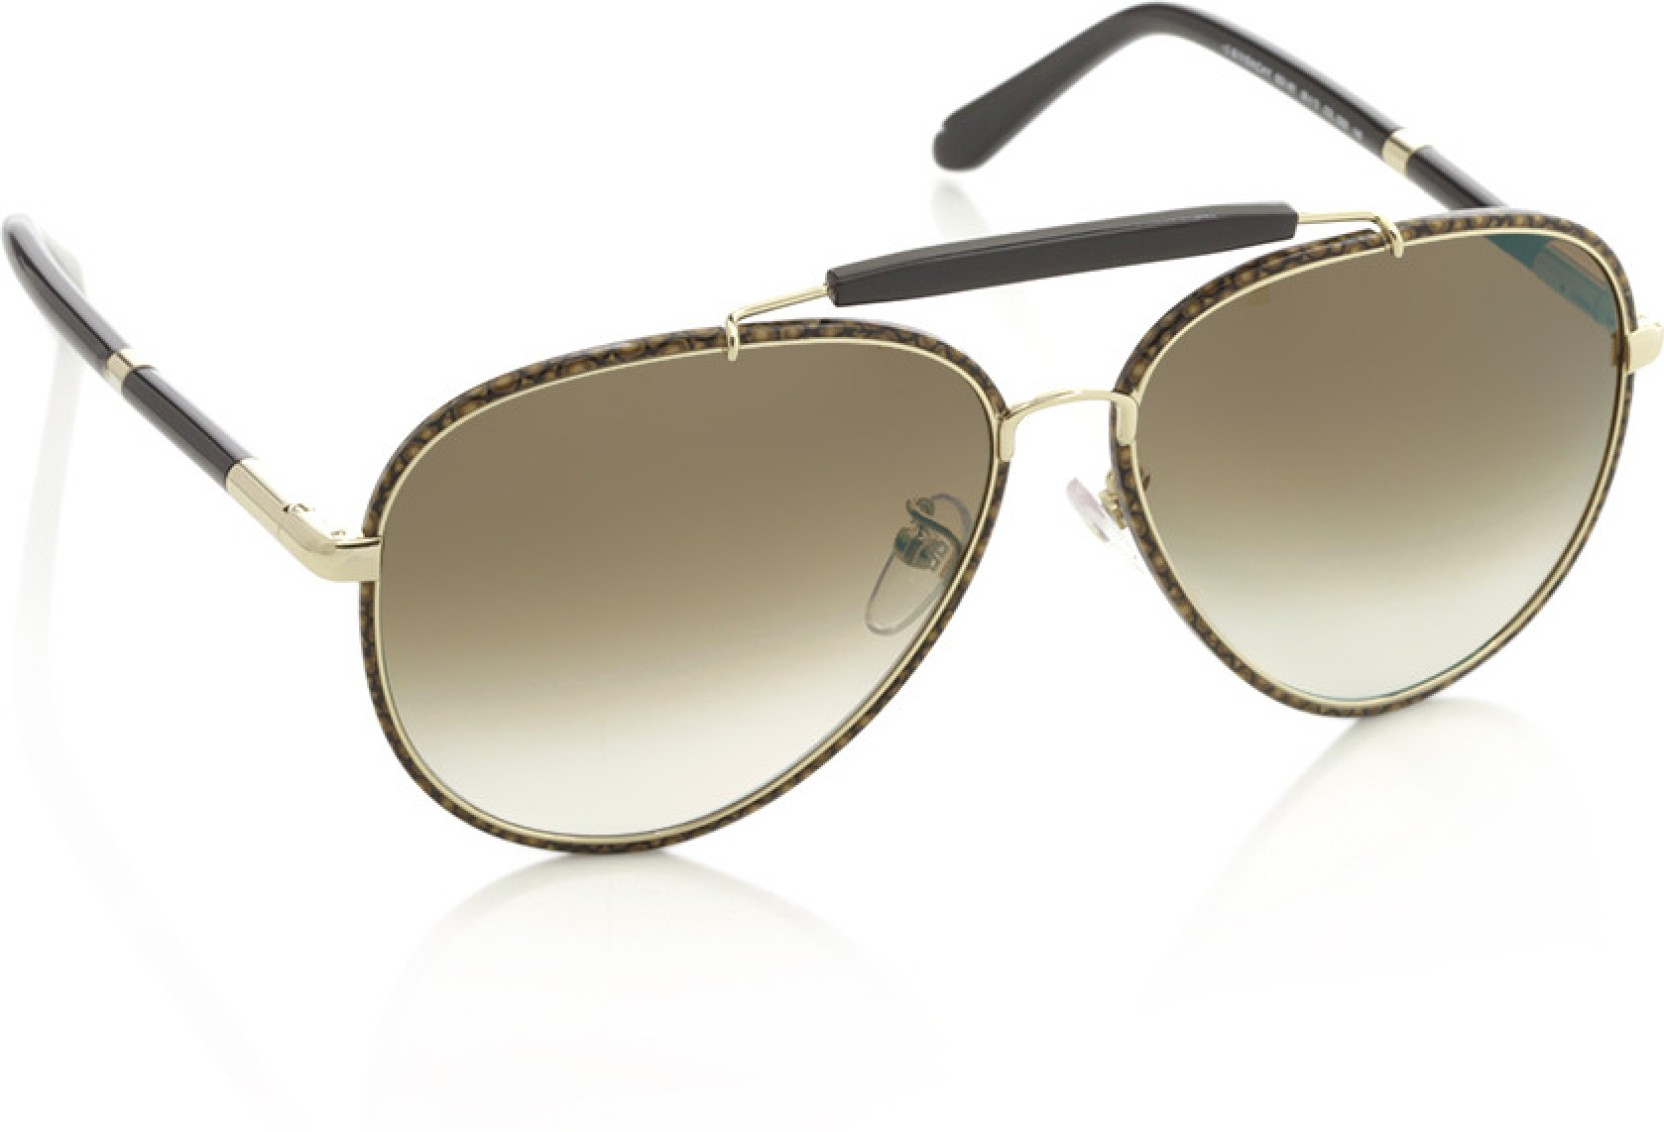 8238816b8945d Buy Givenchy Aviator Sunglasses Brown For Women Online   Best Prices ...